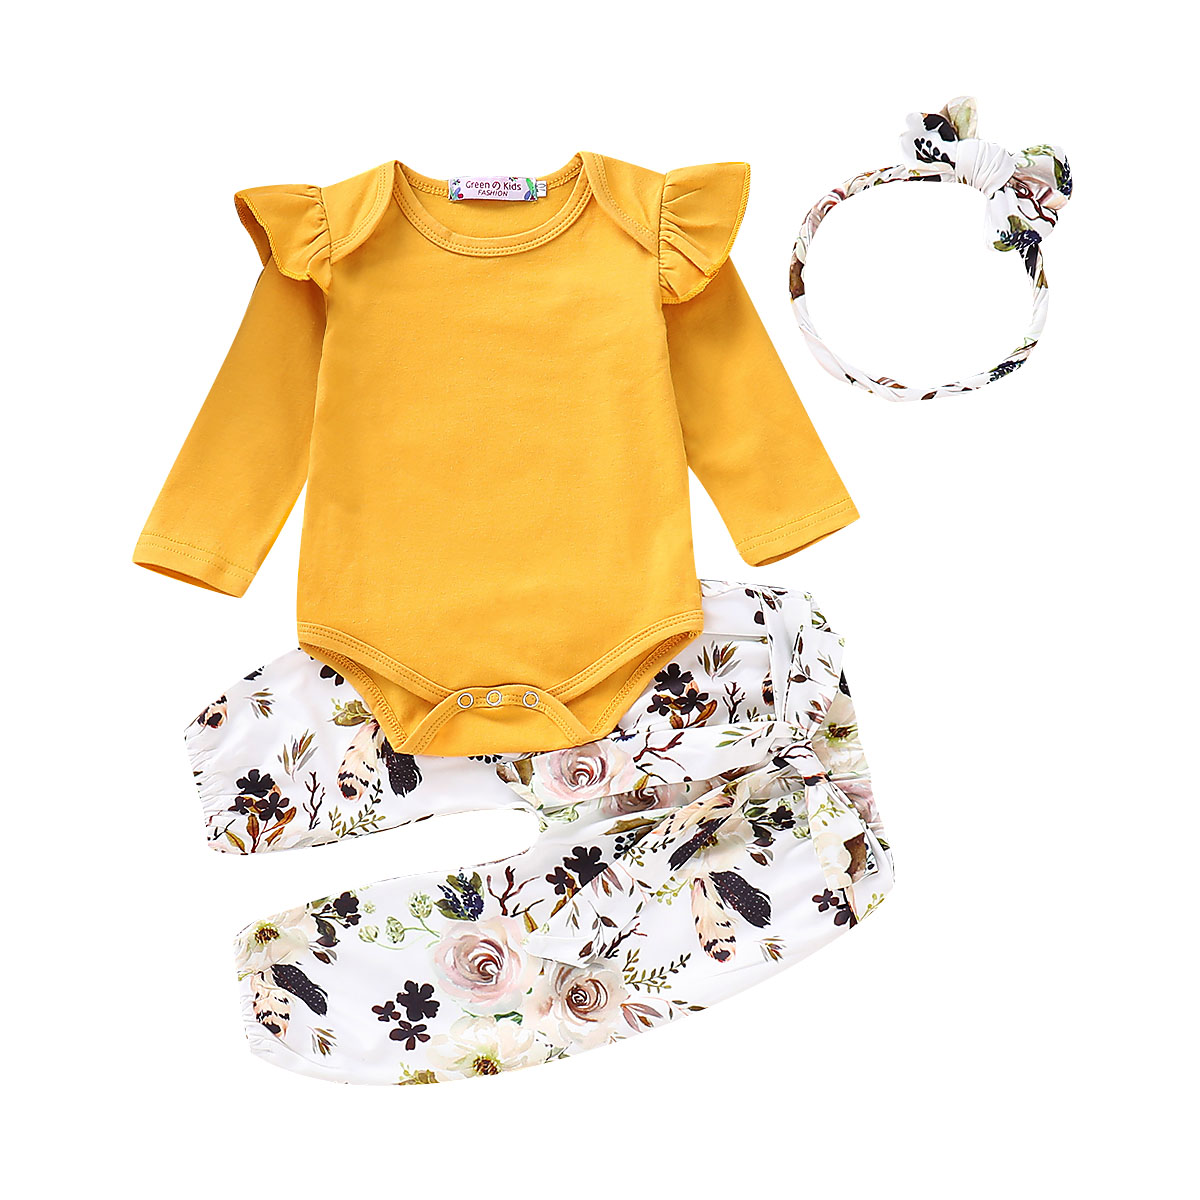 710410a7dd327 Cute Baby Girl Outfits Newborn Lace Fly Sleeve Romper Tops Floral ...